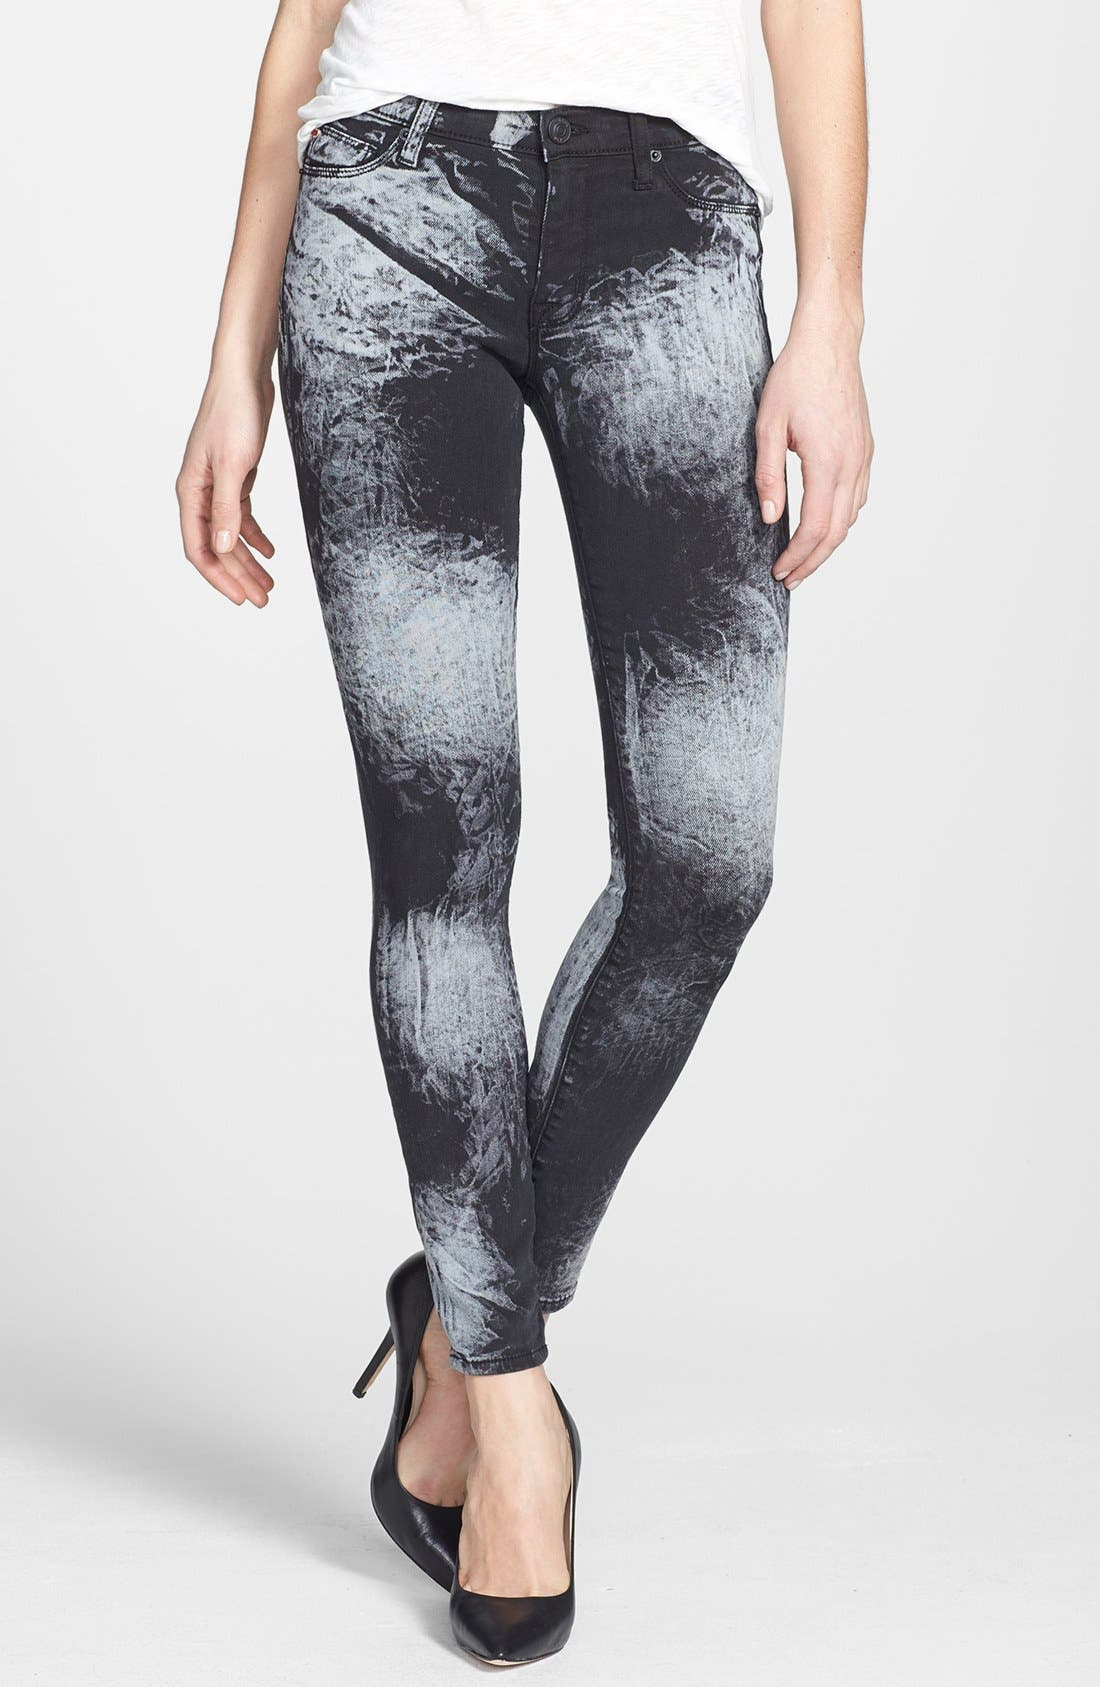 Alternate Image 1 Selected - Hudson Jeans 'Nico' Mid Rise Skinny Stretch Jeans (Sound Garden)